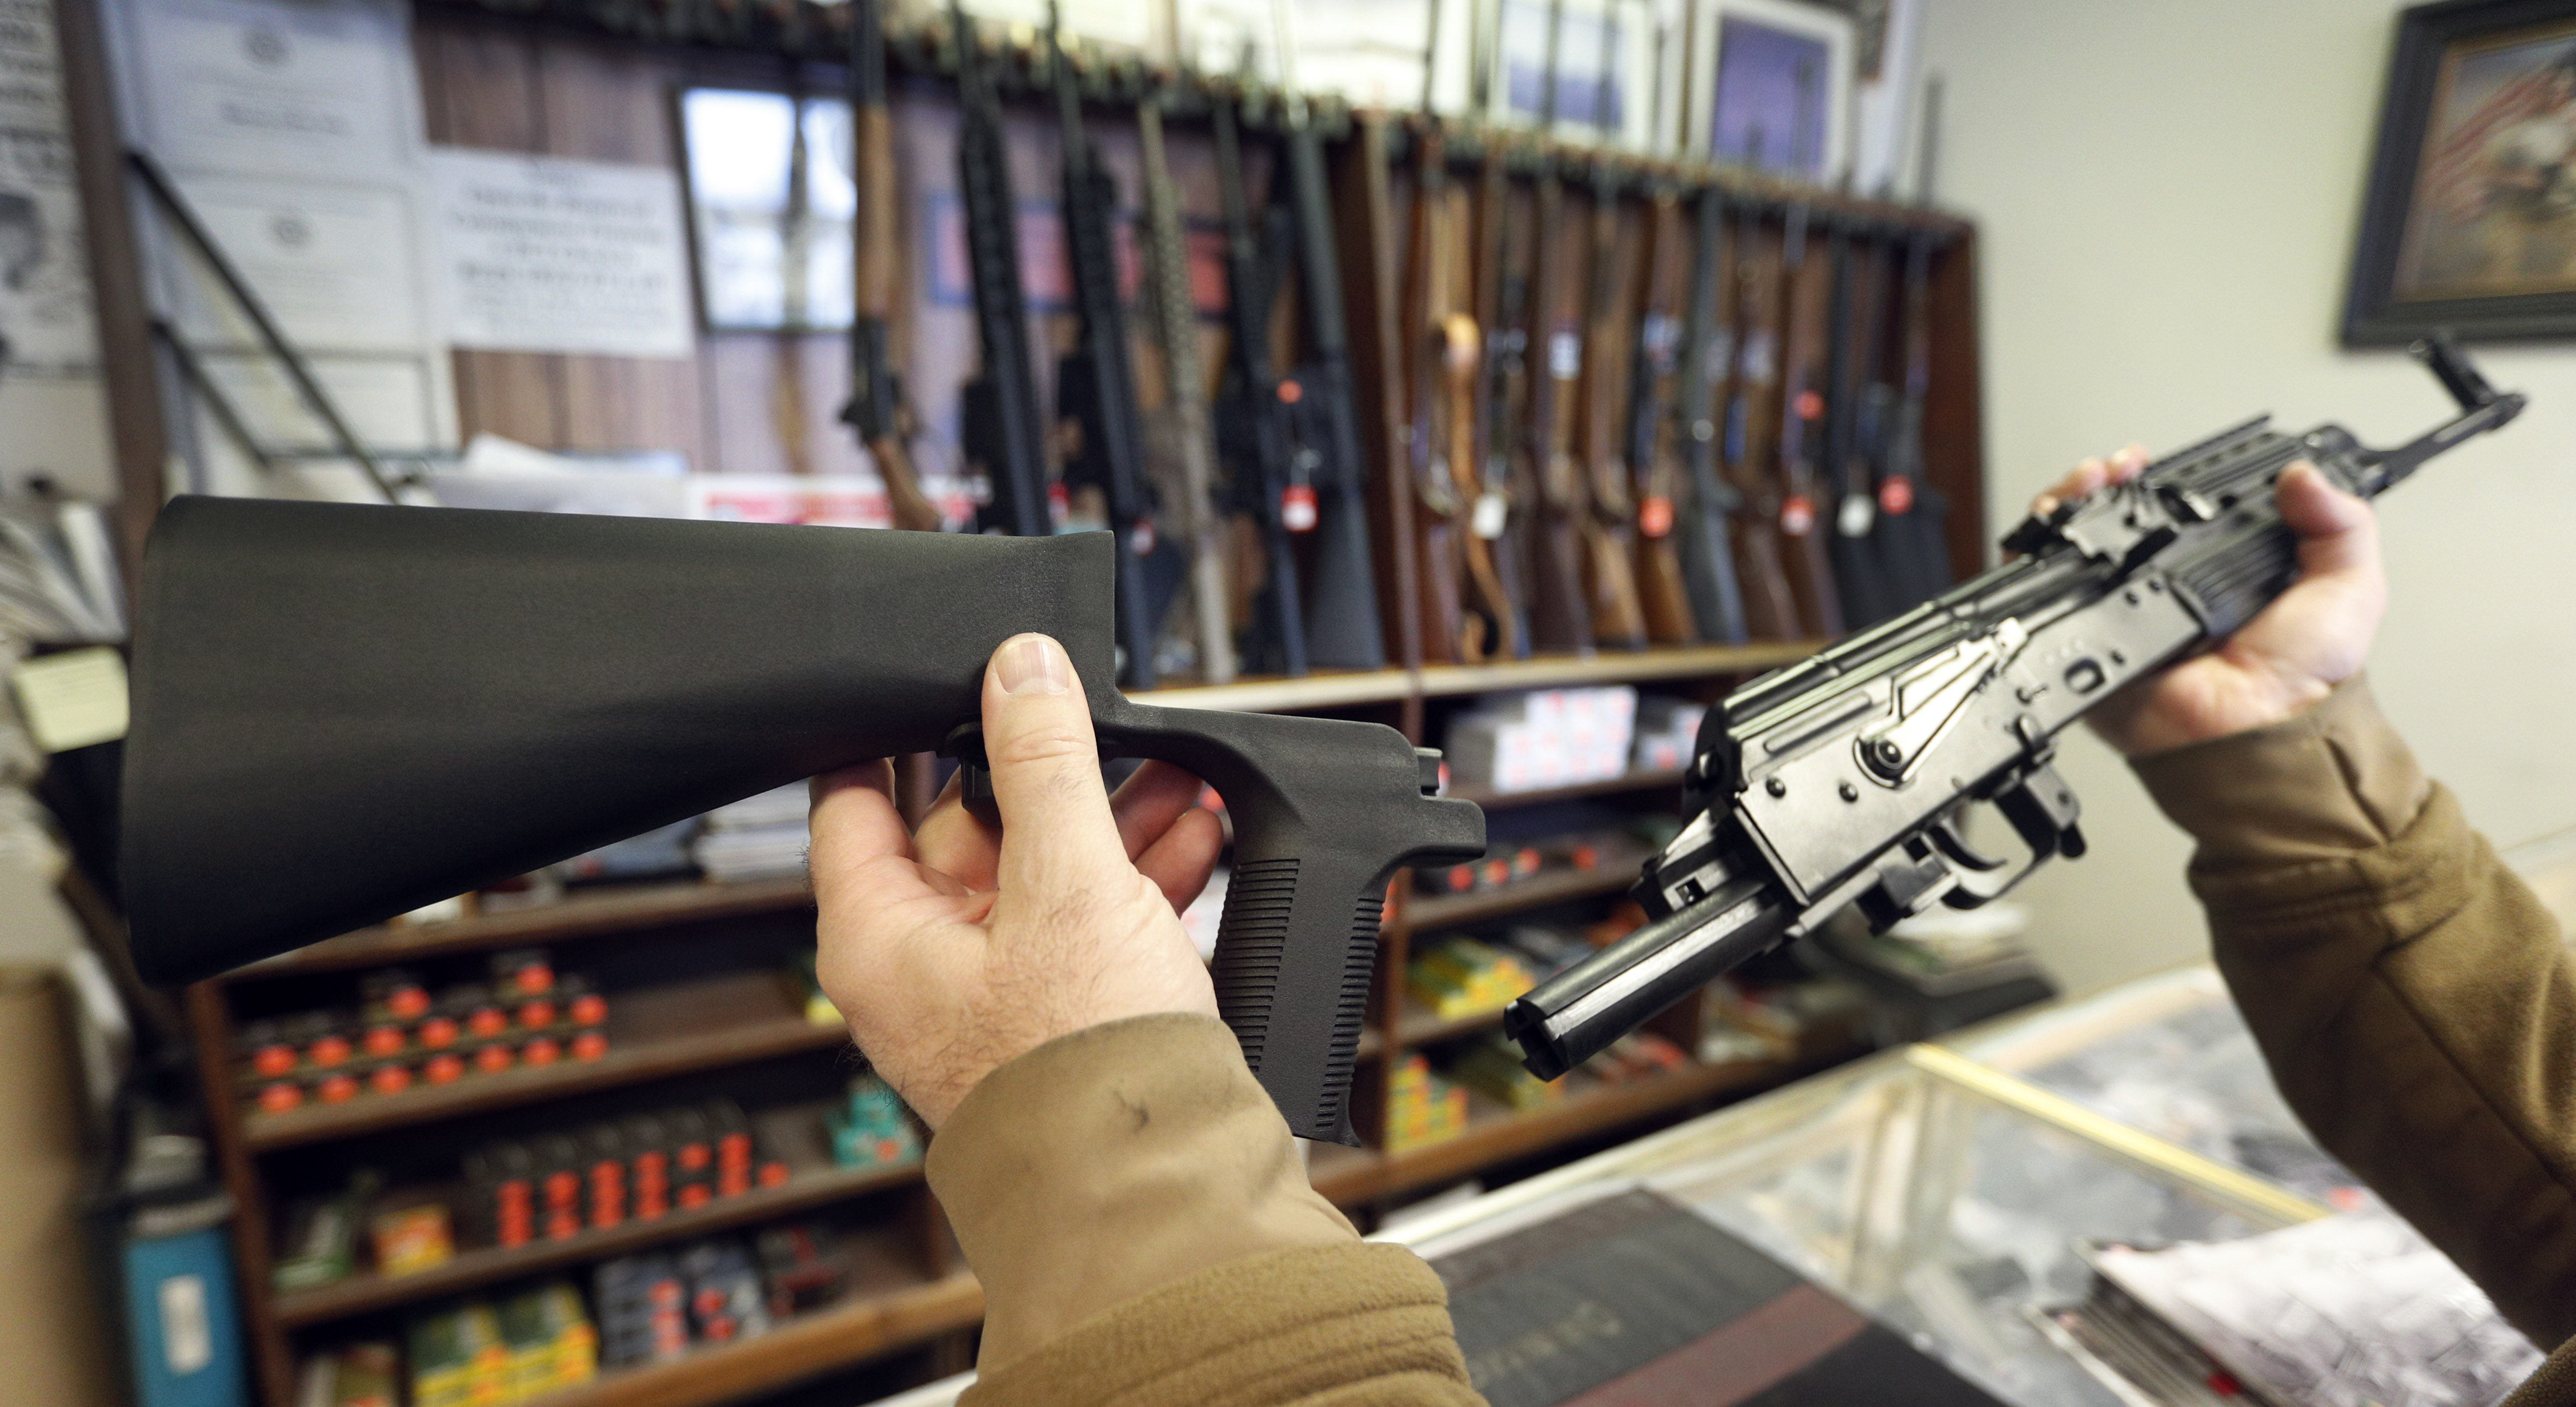 A bump stock device, (left) that fits on a semi-automatic rifle to increase the firing speed, making it similar to a fully automatic rifle, is shown next to a AK-47 semi-automatic rifle, (right) at a gun store on October 5, 2017 in Salt Lake City, Utah.